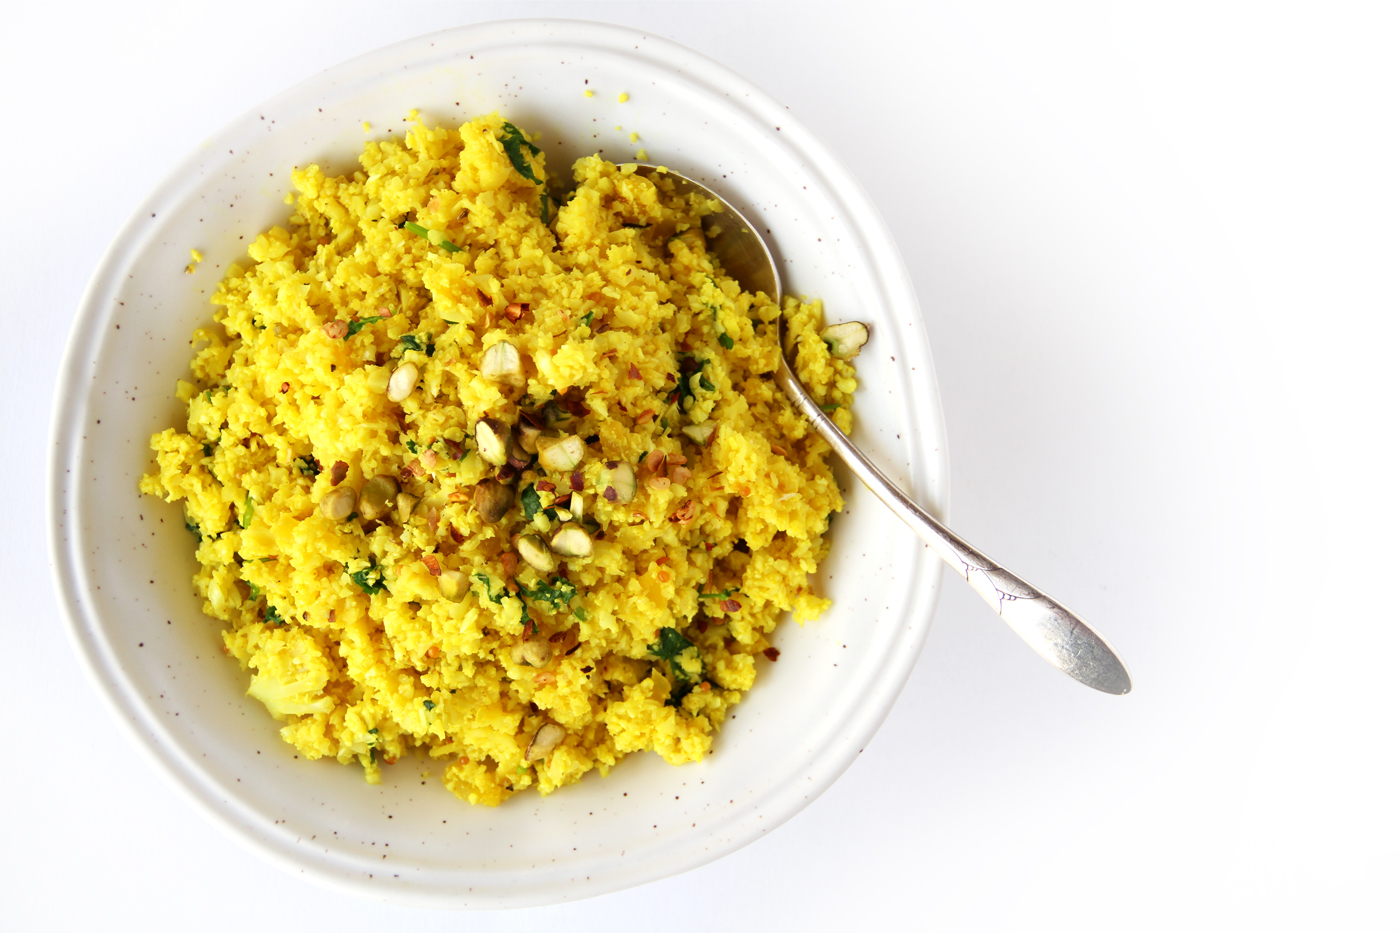 Vegan cauliflower Indian rice made by Active Vegetarian